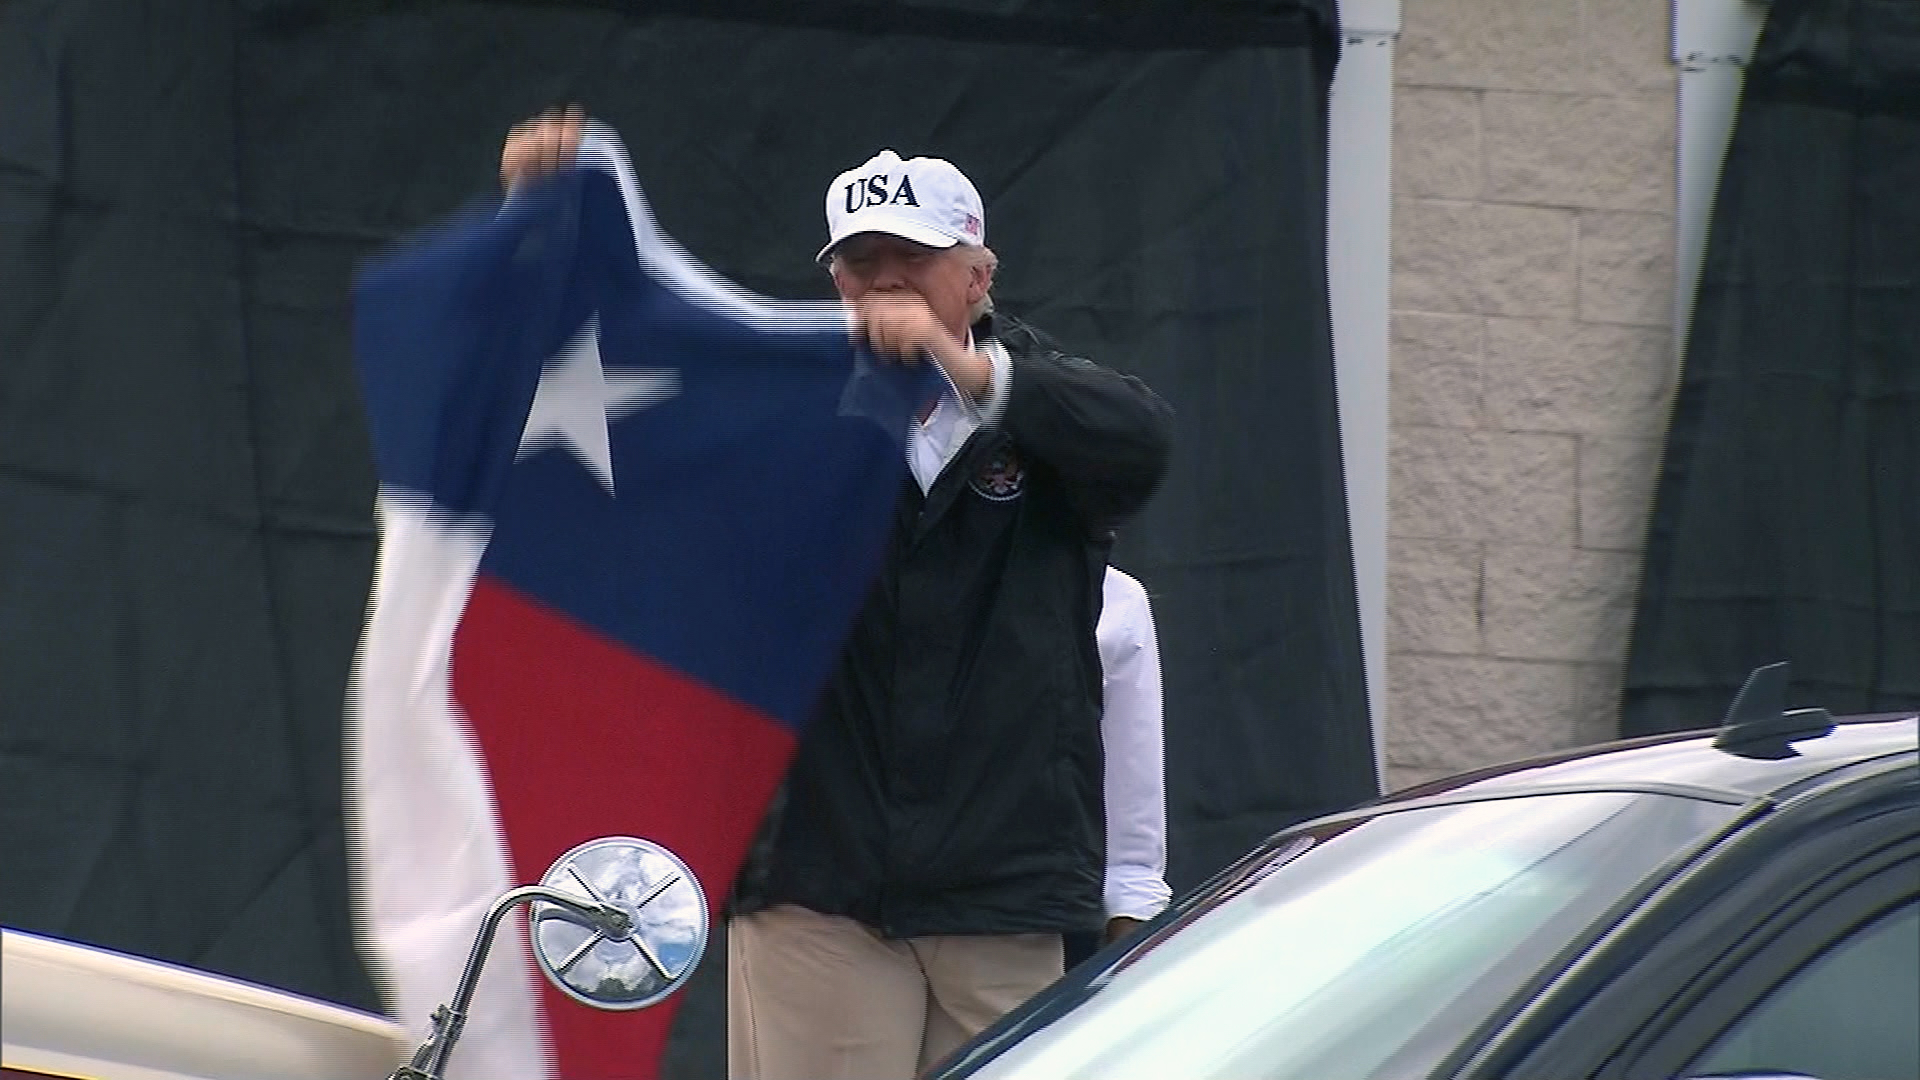 Trump waiving Texas flag-159532.jpg89996242